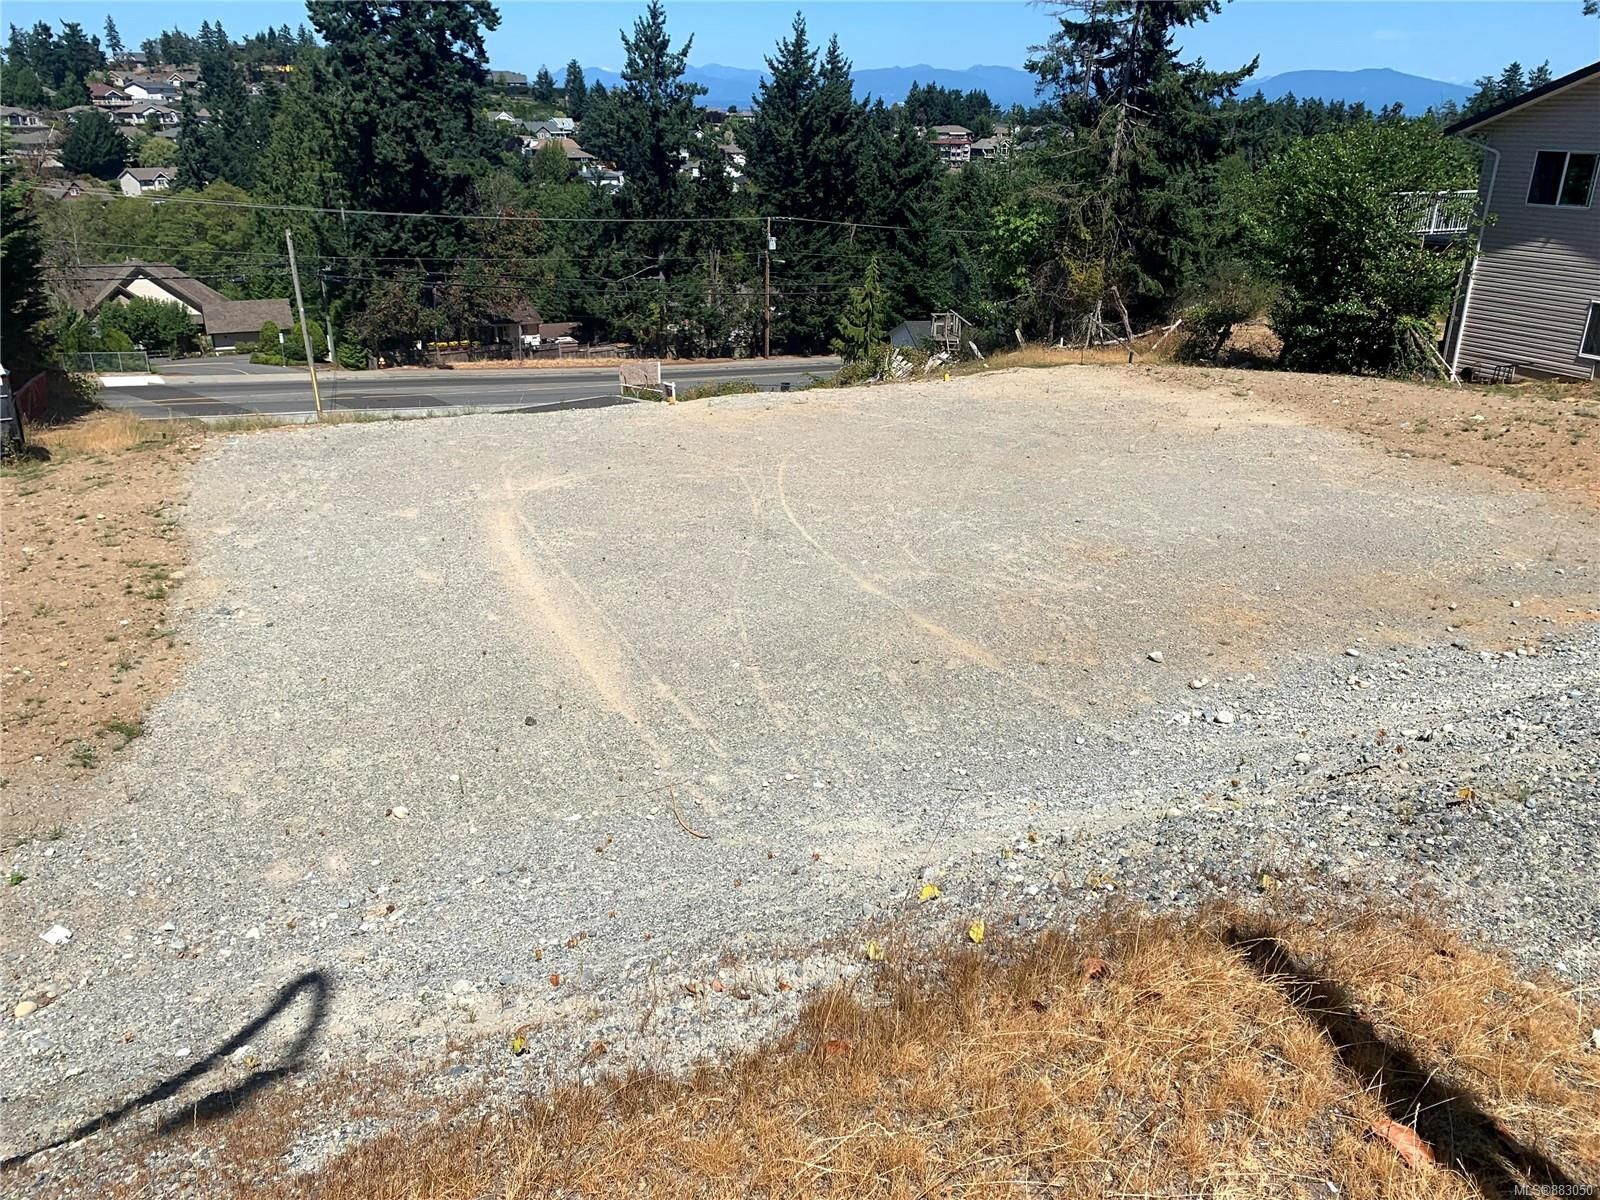 Main Photo: lot 4 Gulfview Dr in : Na Hammond Bay Land for sale (Nanaimo)  : MLS®# 883050